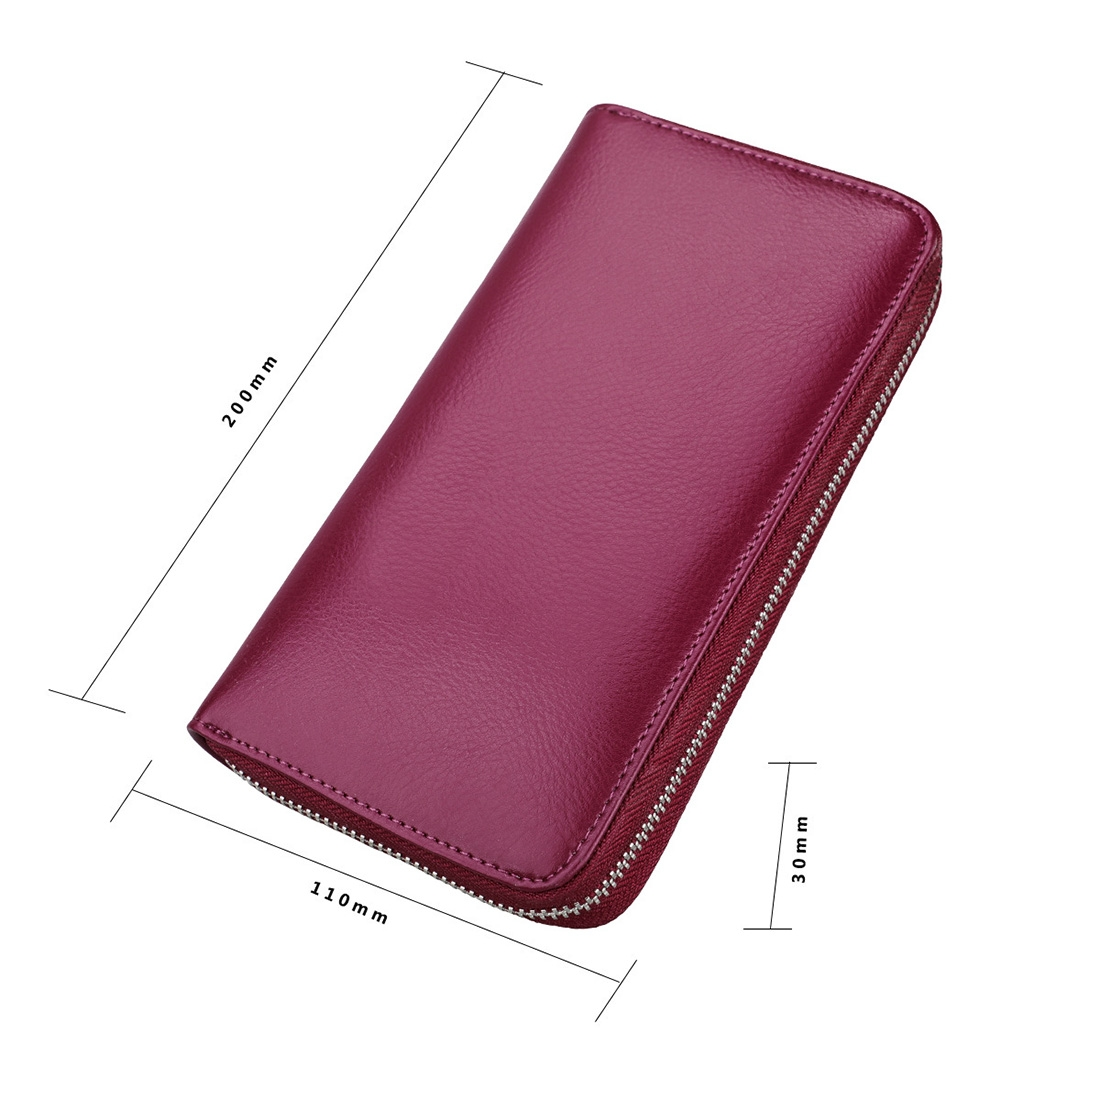 Antimagnetic RFID Large Capacity Long Style Genuine Leather Passport Package / Multifunctional and Many Card Slots Card Package (Purple)